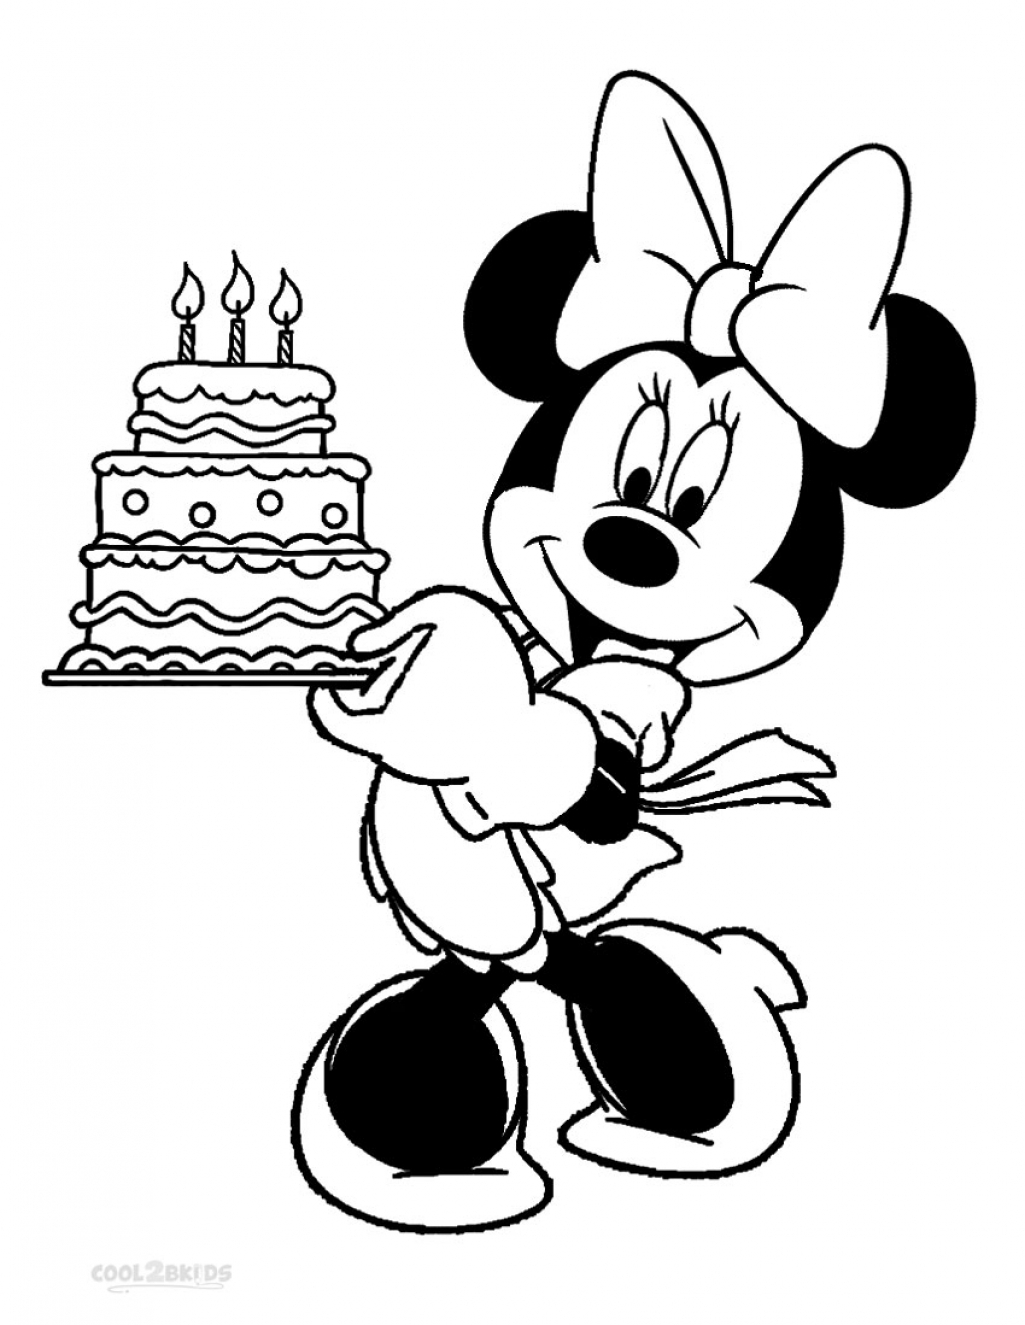 minnie mouse printable coloring pages free printable minnie mouse coloring pages for kids printable pages mouse minnie coloring